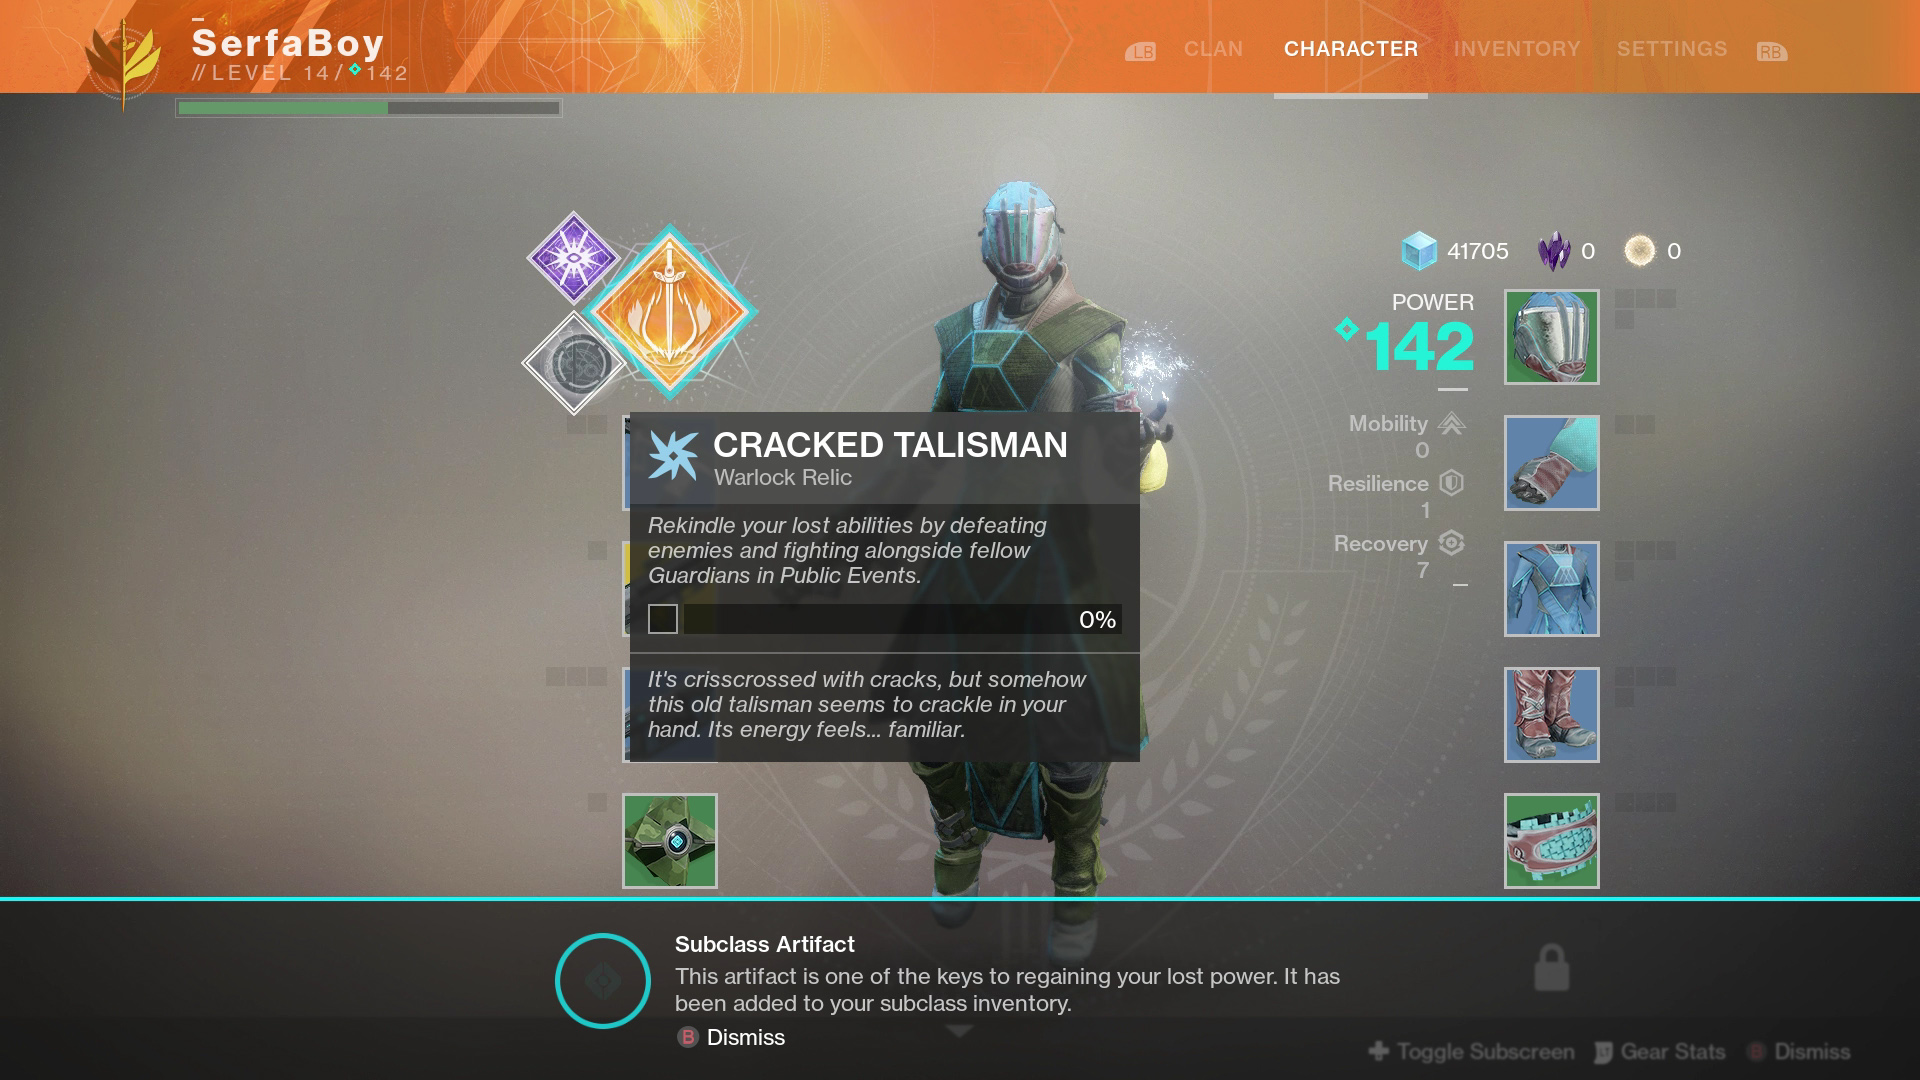 The third subclass is unlocked in the same way as the second subclass, but takes more time to complete.